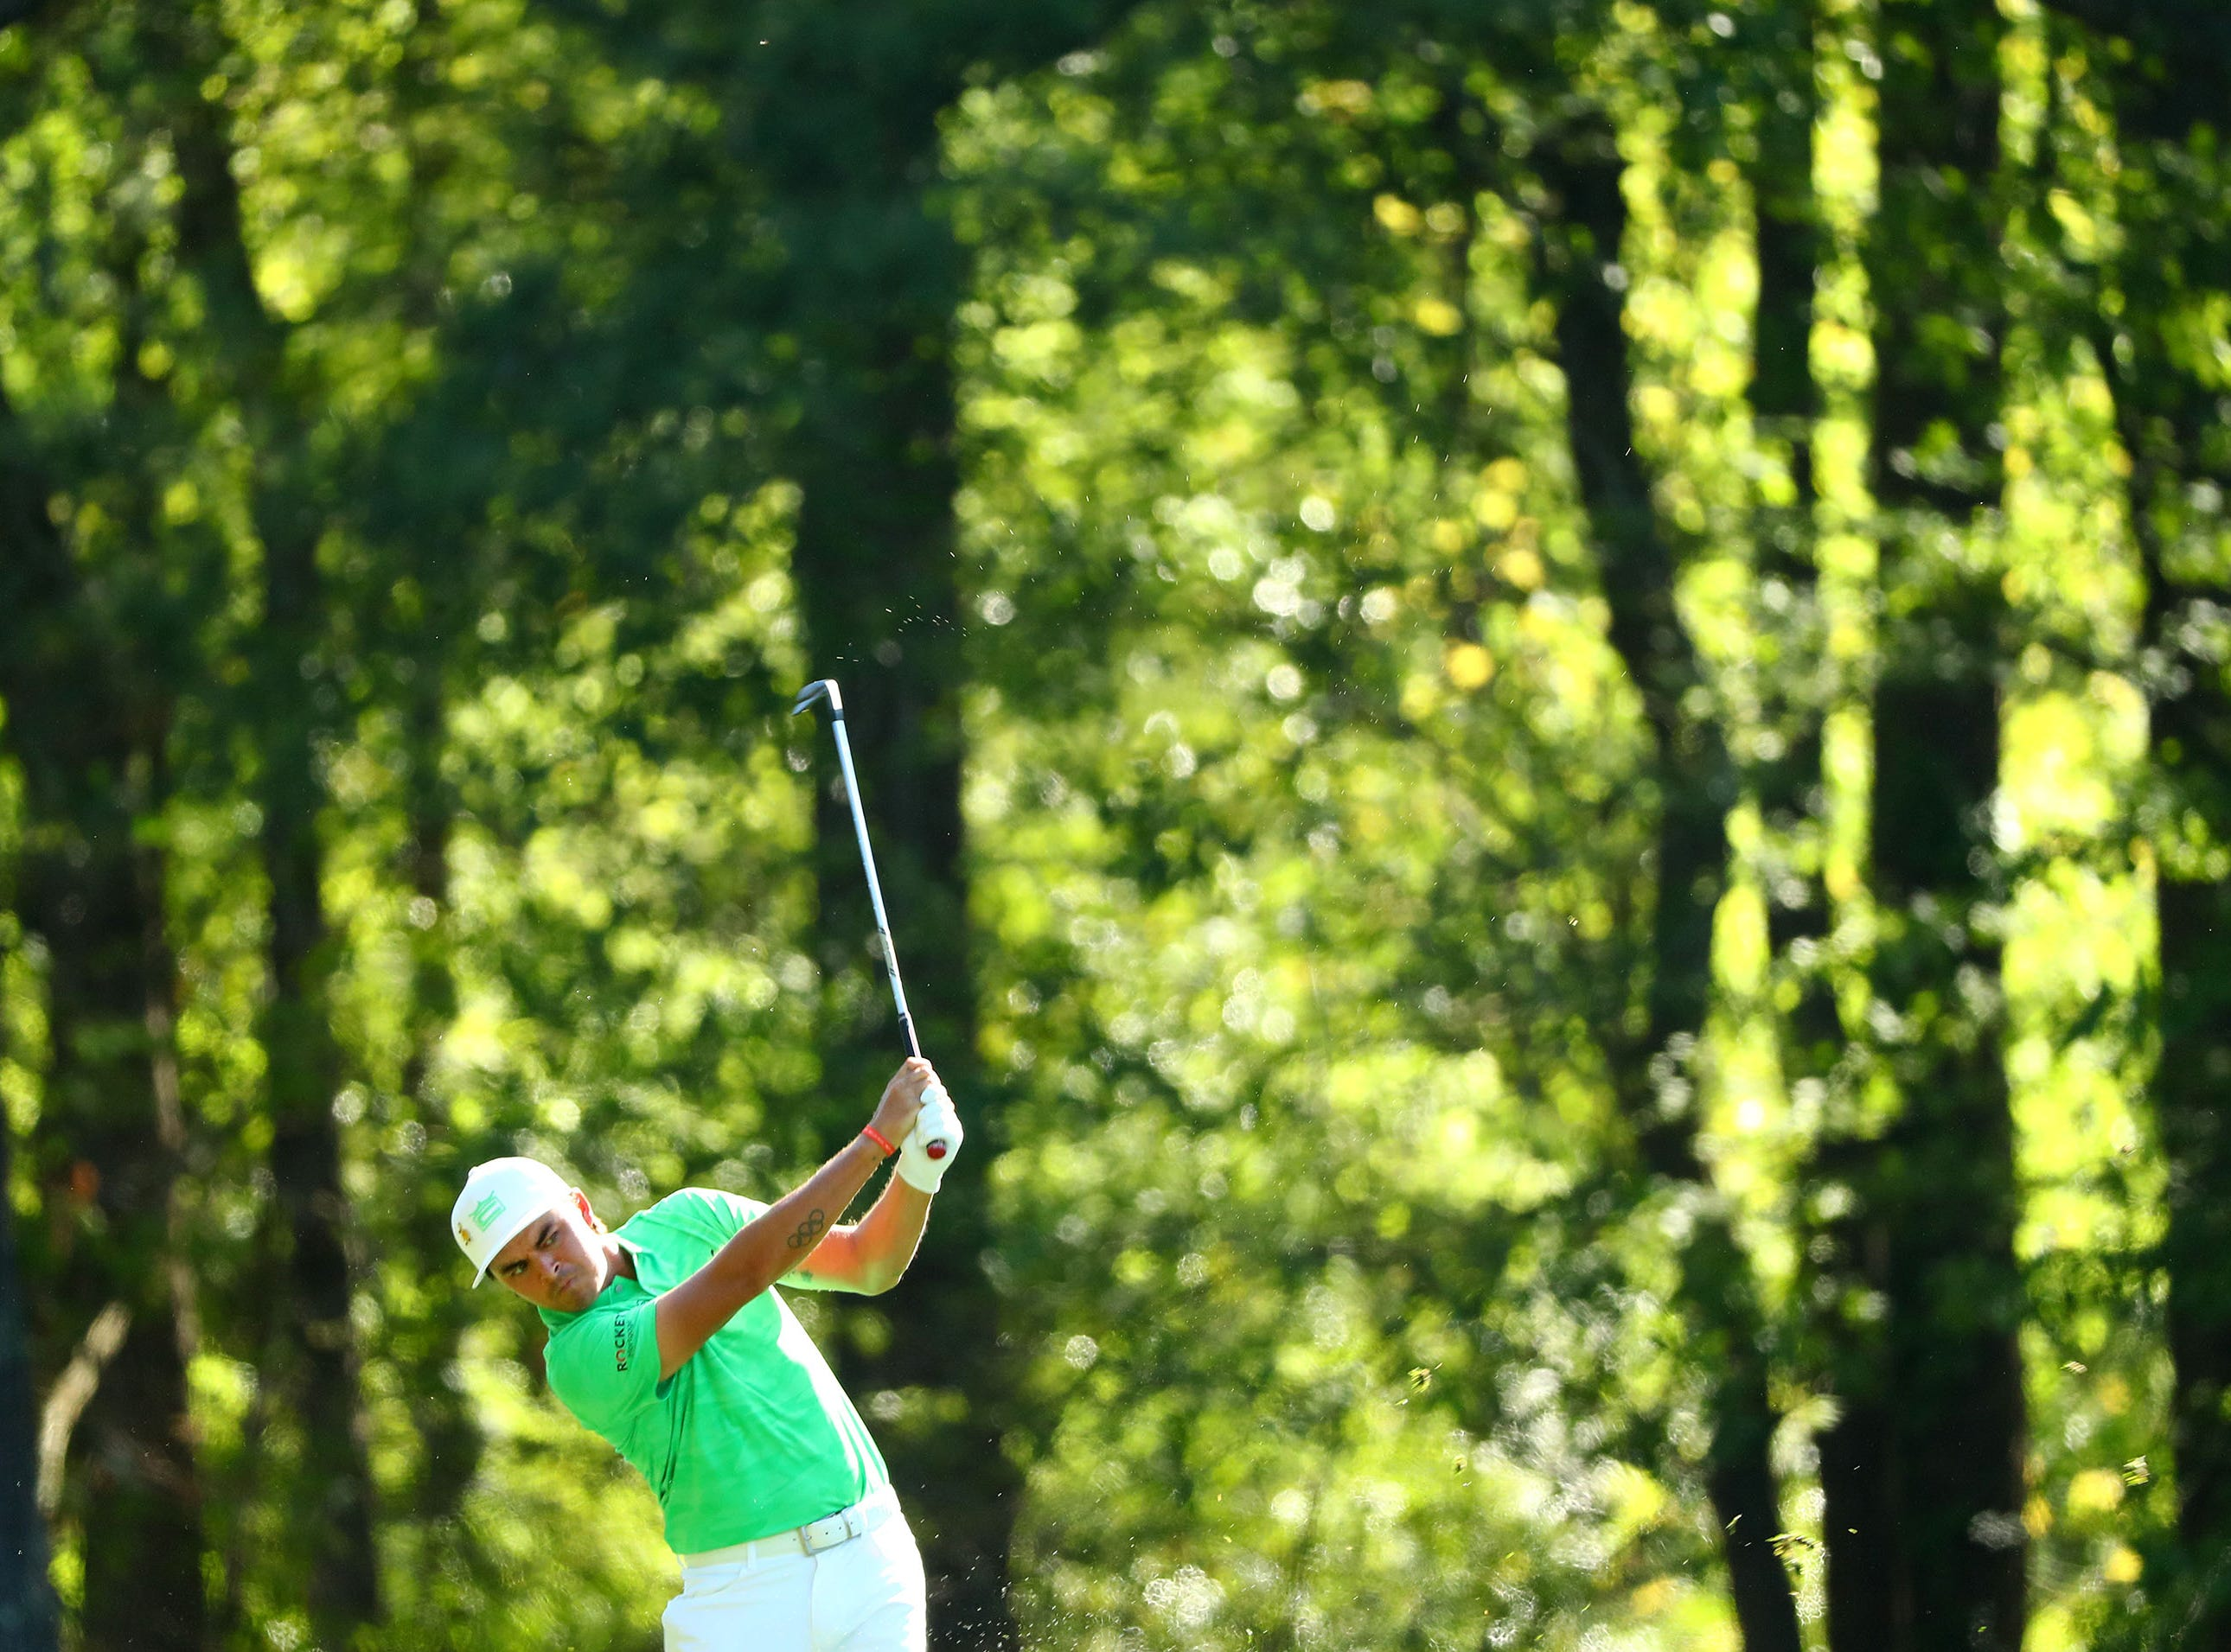 Apr 10, 2019; Augusta, GA, USA; Rickie Fowler plays a shot on the 11th hole during a practice round for The Masters golf tournament at Augusta National Golf Club. Mandatory Credit: Rob Schumacher-USA TODAY Sports